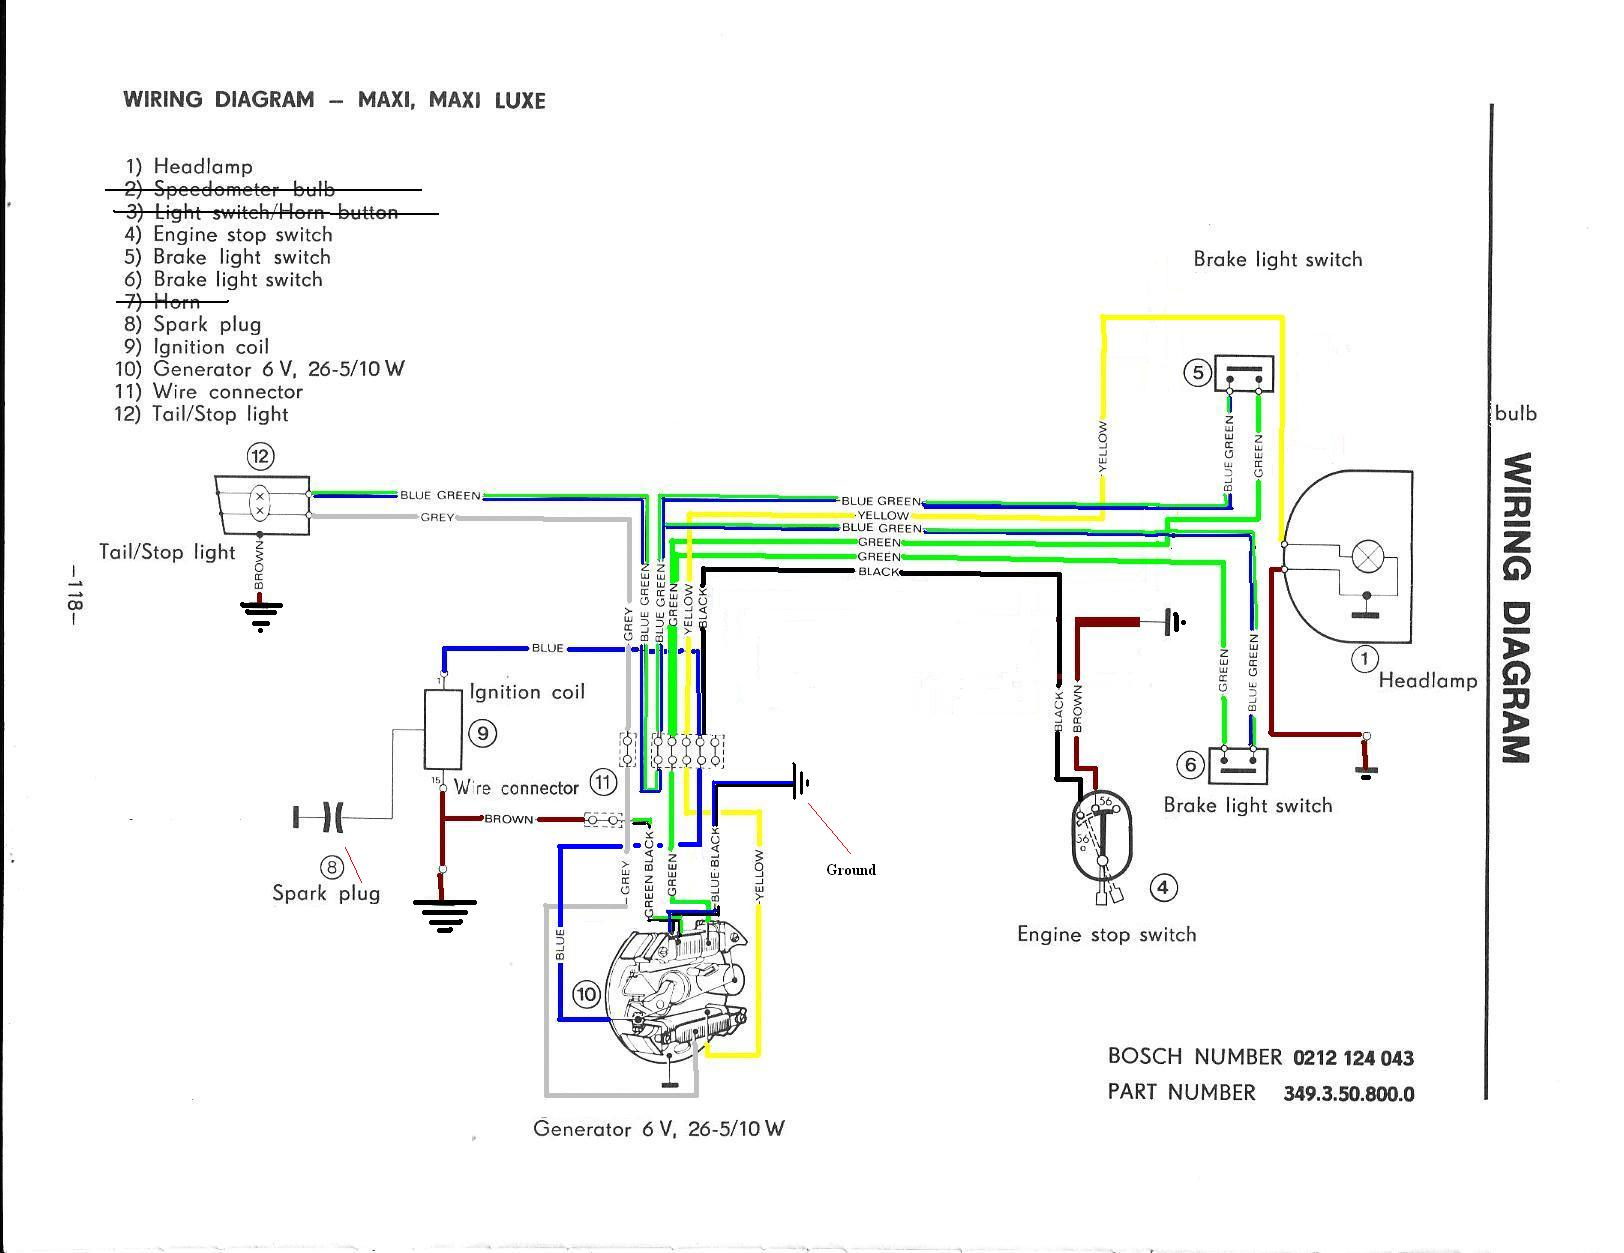 puch maxi wiring diagram with Puch Newport Wiring Diagram on Puch Moped Wiring Diagram in addition Puch Newport Wiring Diagram also Exploded puch ns automatic 2 speed additionally 310909632992 additionally 1981 Yamaha Moped Wiring Diagram.